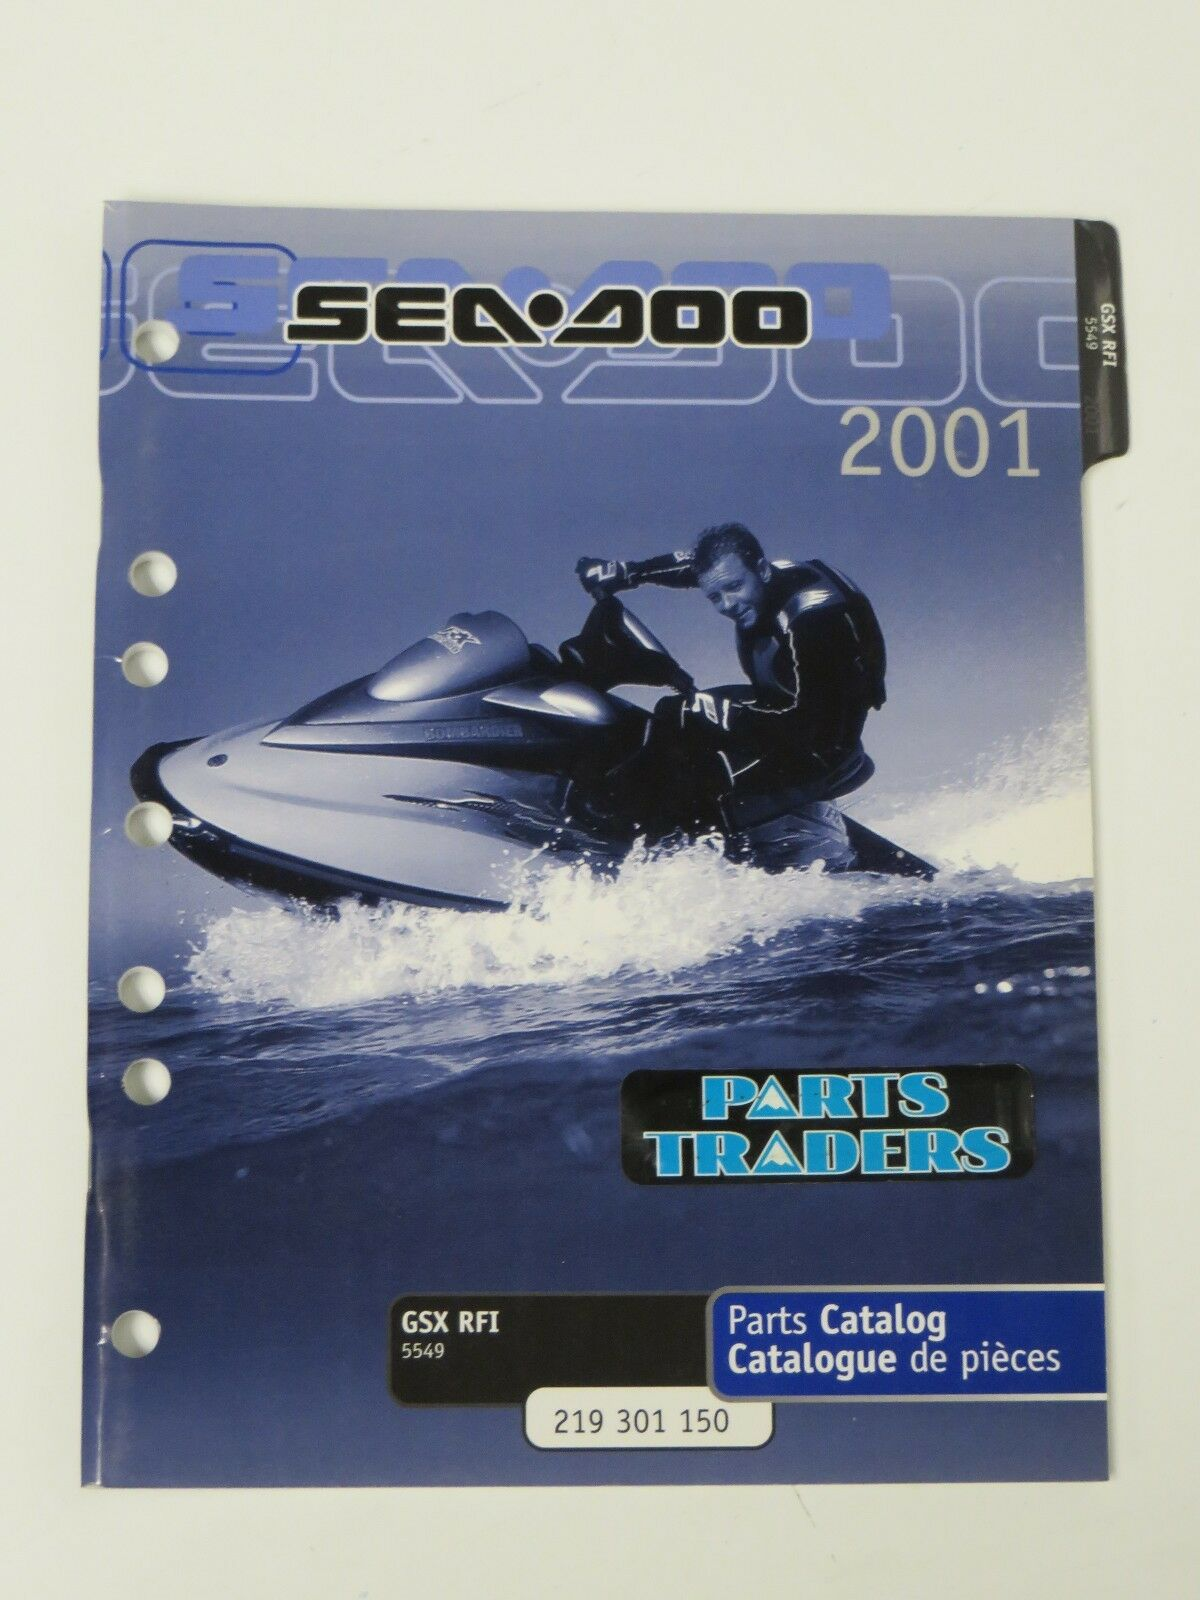 Bombardier Sea-Doo Dealer Parts Catalog Diagrams Manual GSX RFI 5549 2001  BRP 1 of 1Only 1 available ...